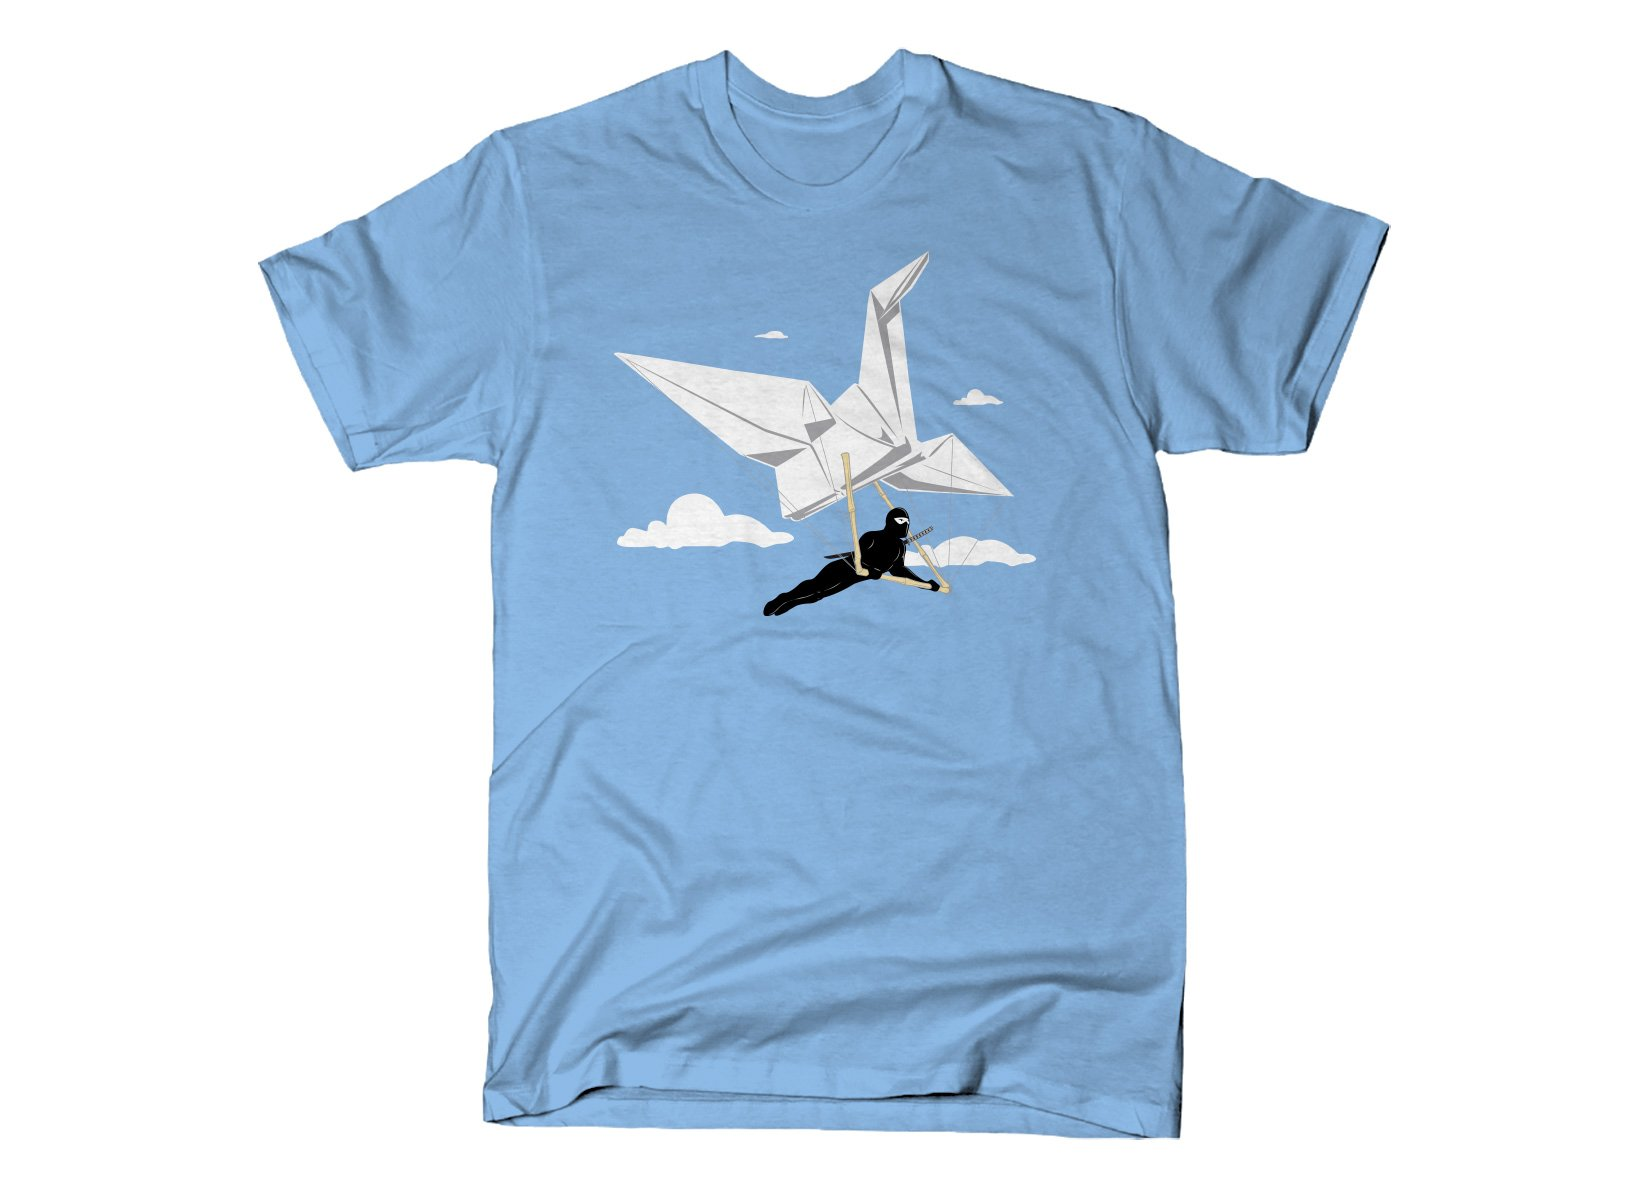 Ninja Glider on Mens T-Shirt